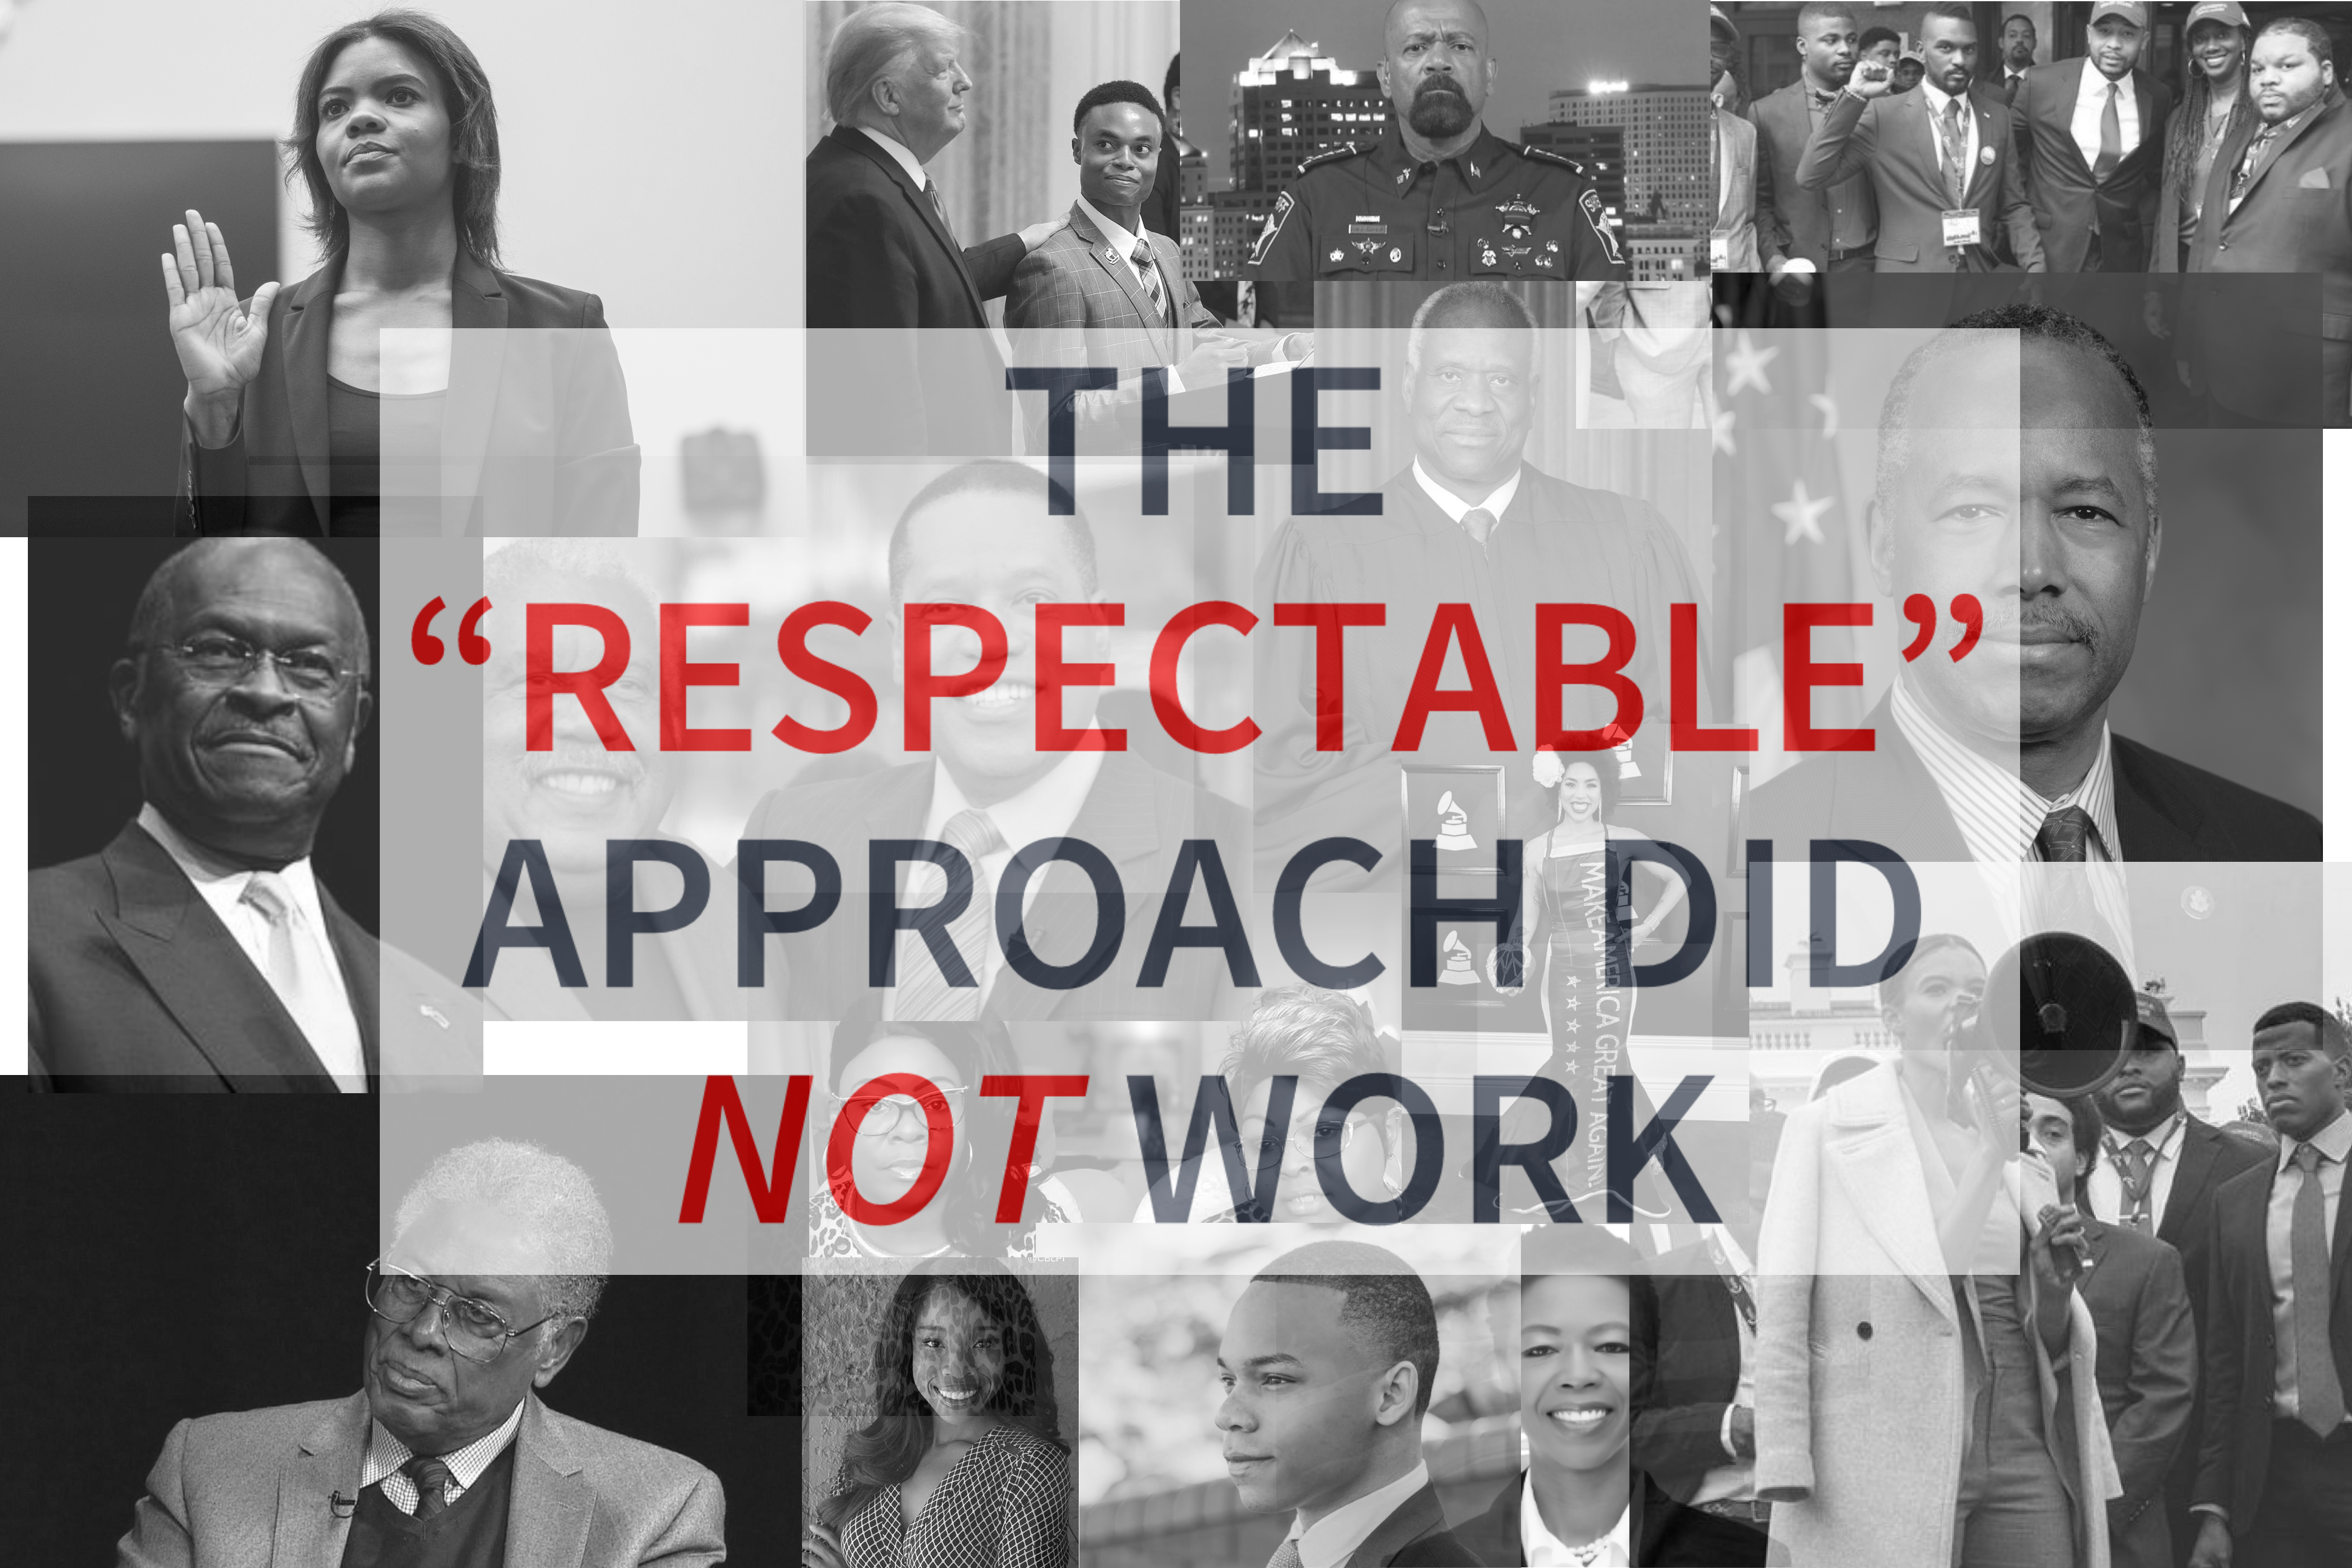 Black Respectability does not work at UWindsor